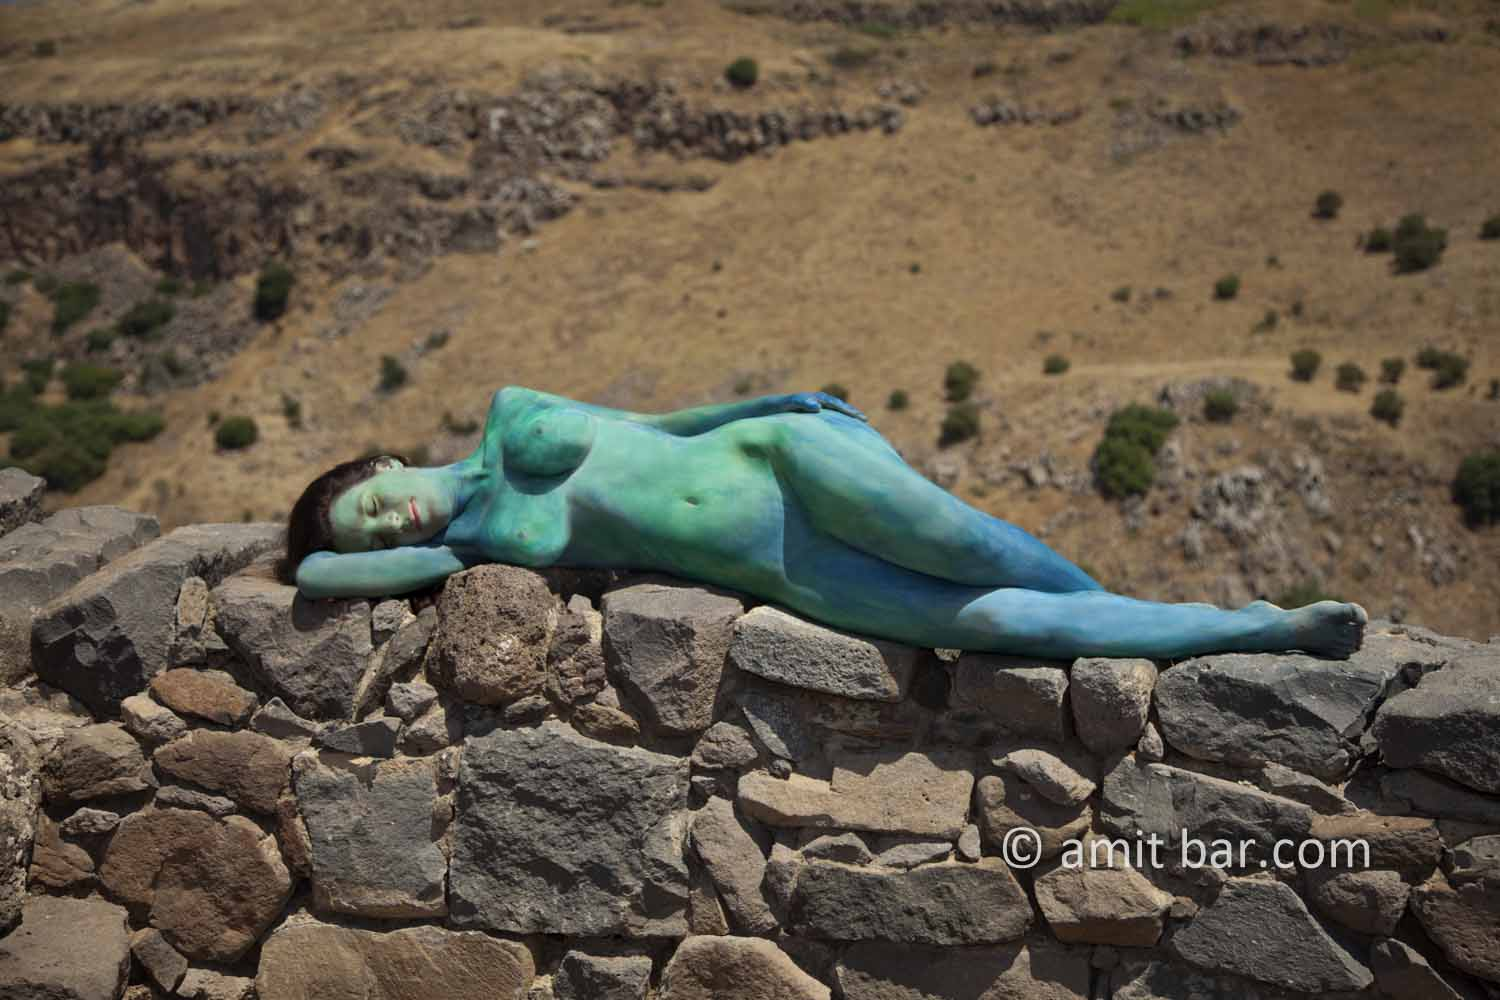 Gamla V: Body-painted model at the Gamla fortress in Israel